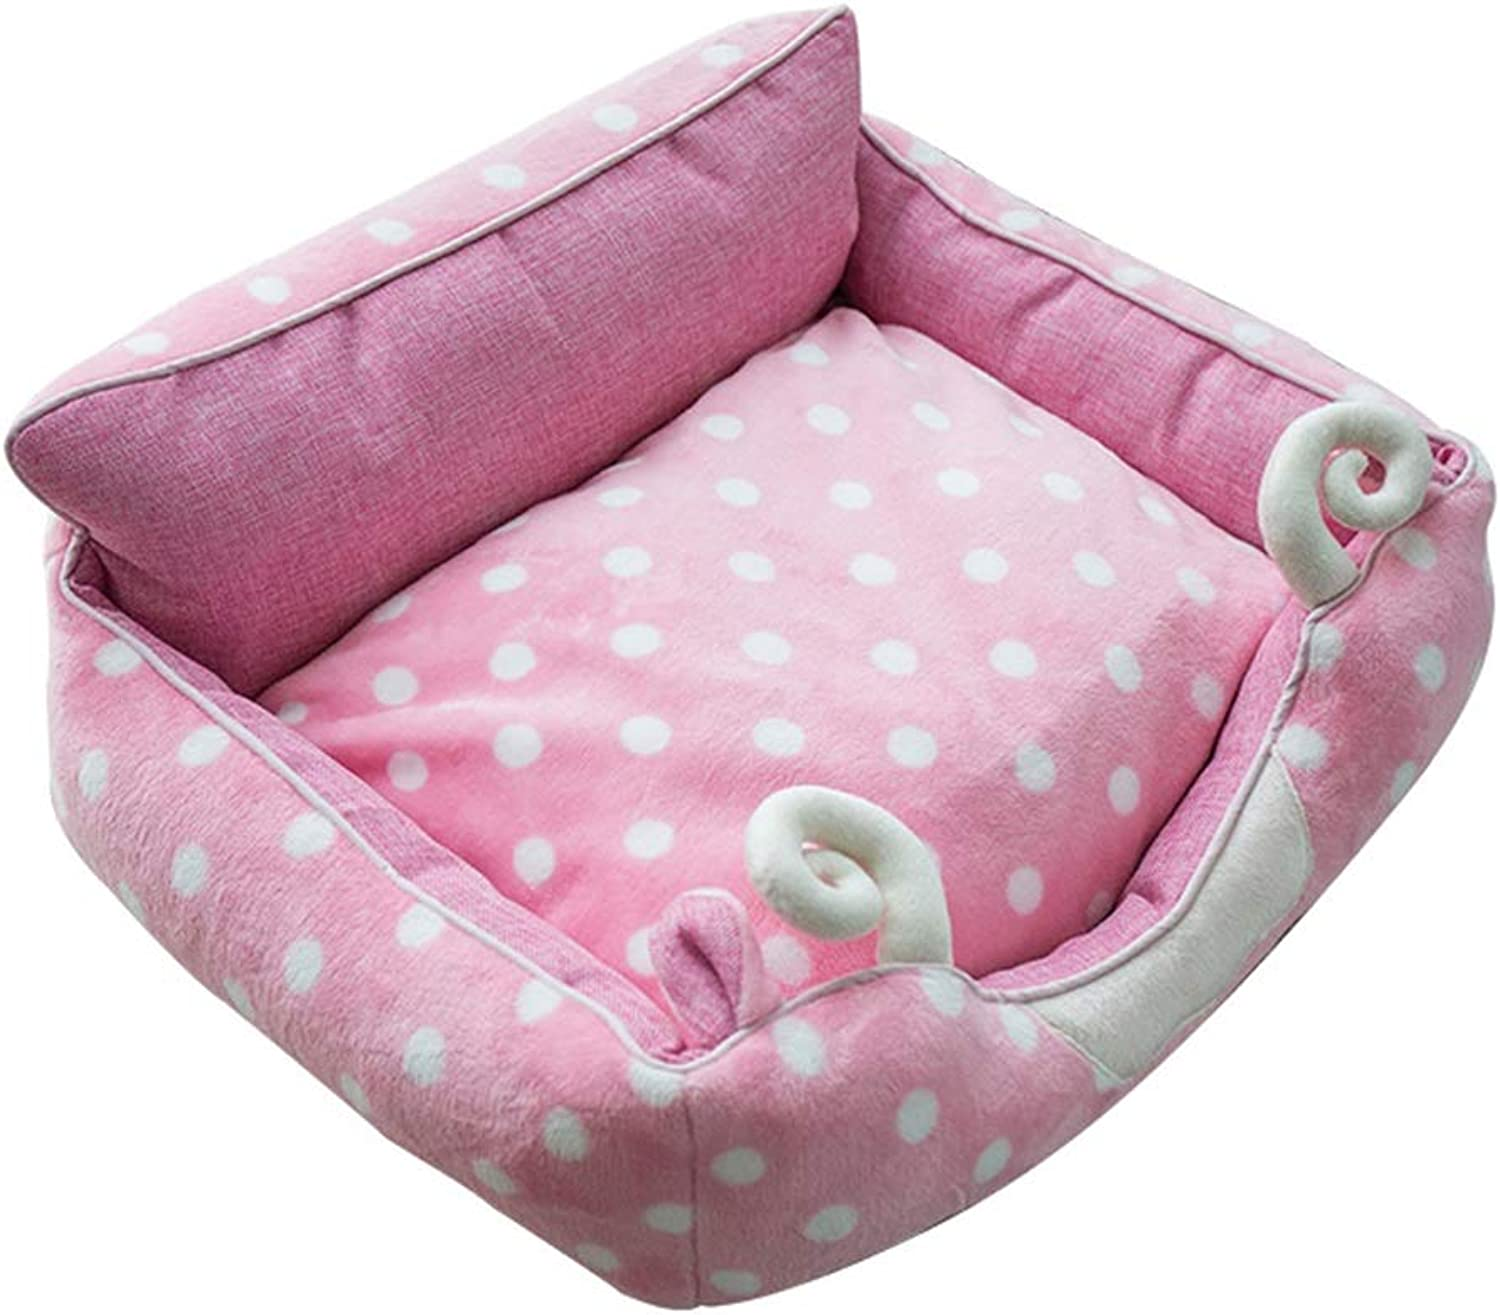 Dog Bed, Soft Warm Plush Kennel Small Dog Fully Removable and Washable Winter Warm Cat Litter Four Seasons Universal Dog Bed (color   Pink, Size   S)